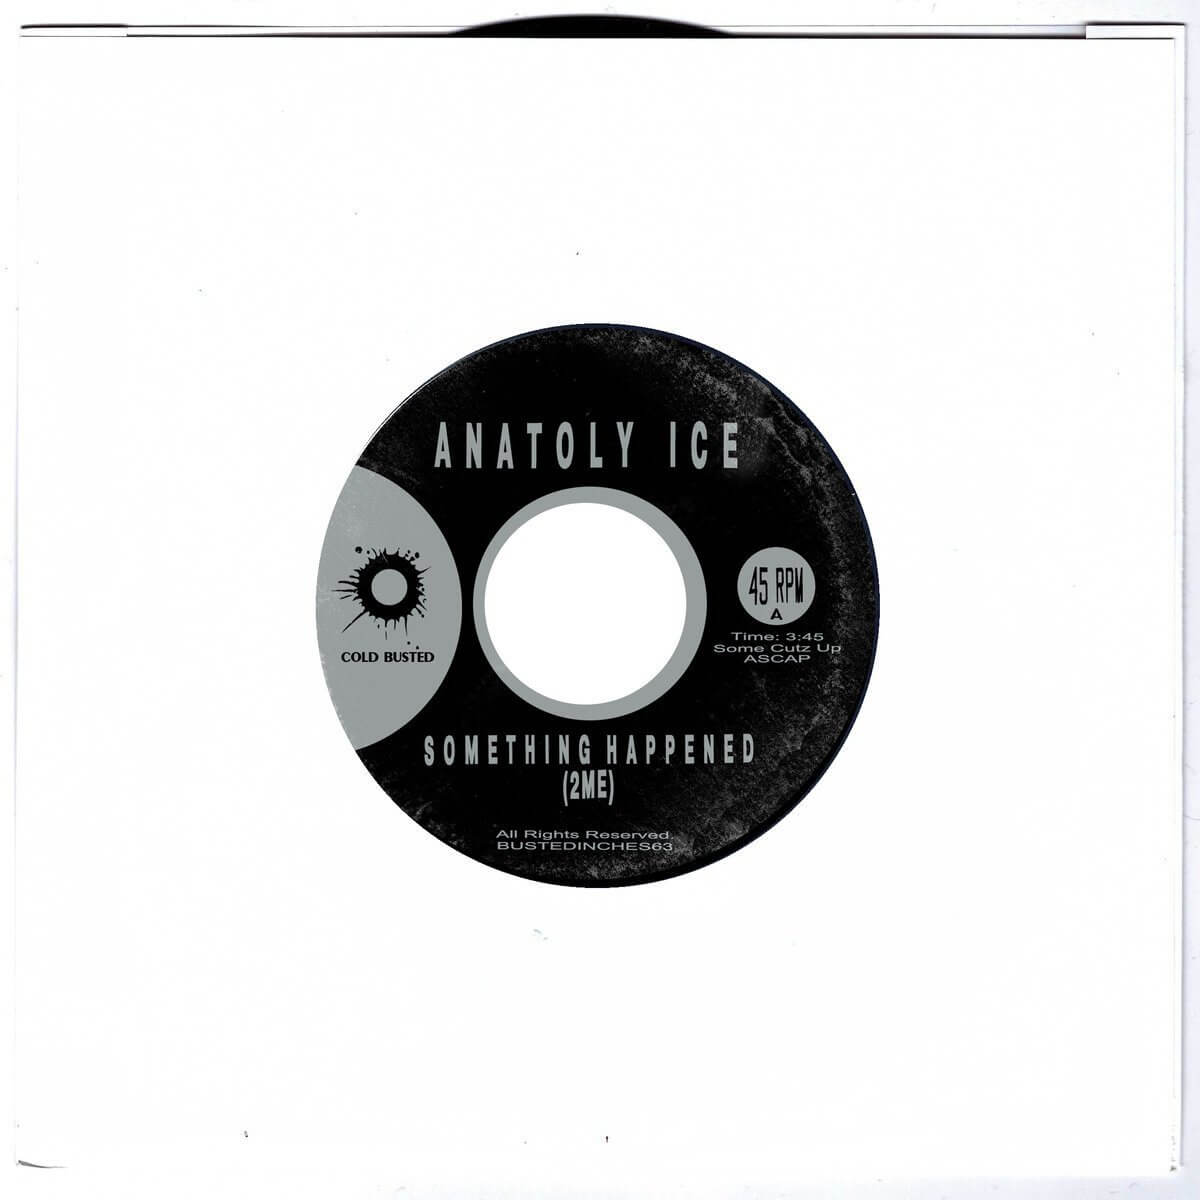 "Anatoly Ice - Something Happened / Light - Limited Edition 7"" Vinyl Cold Busted"